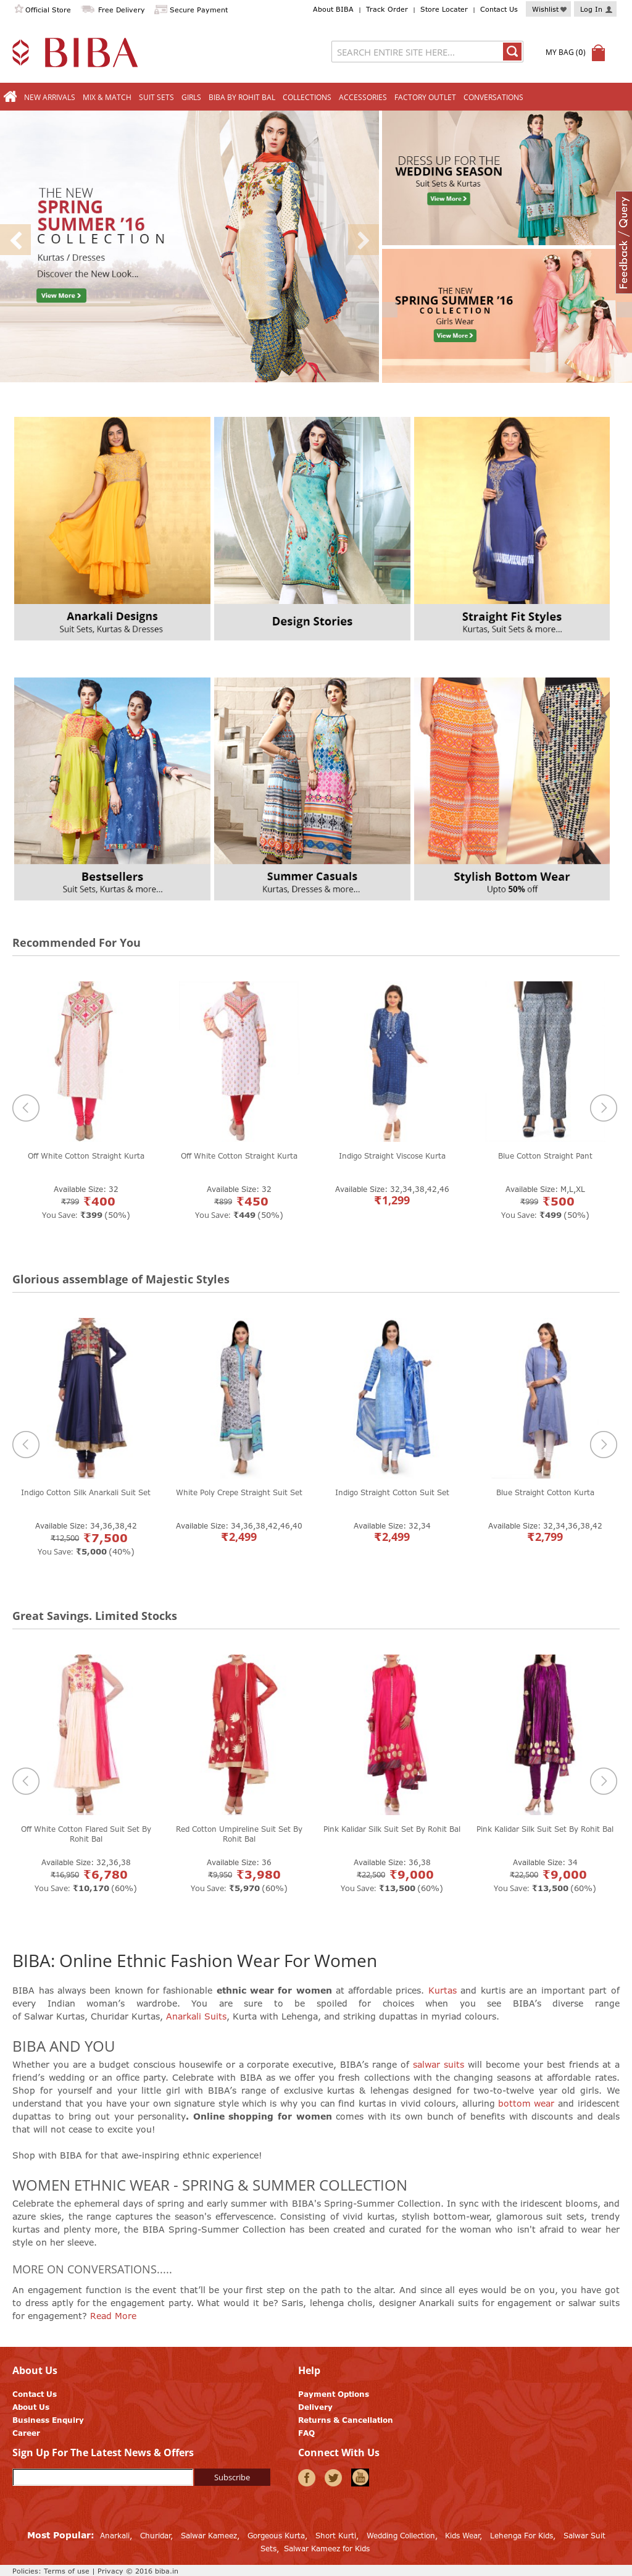 footfall increase of biba apparels pvt Biba apparel pvt ltd latest breaking news, pictures, videos, and special reports from the economic times biba apparel pvt ltd blogs, comments and archive news on economictimescom.